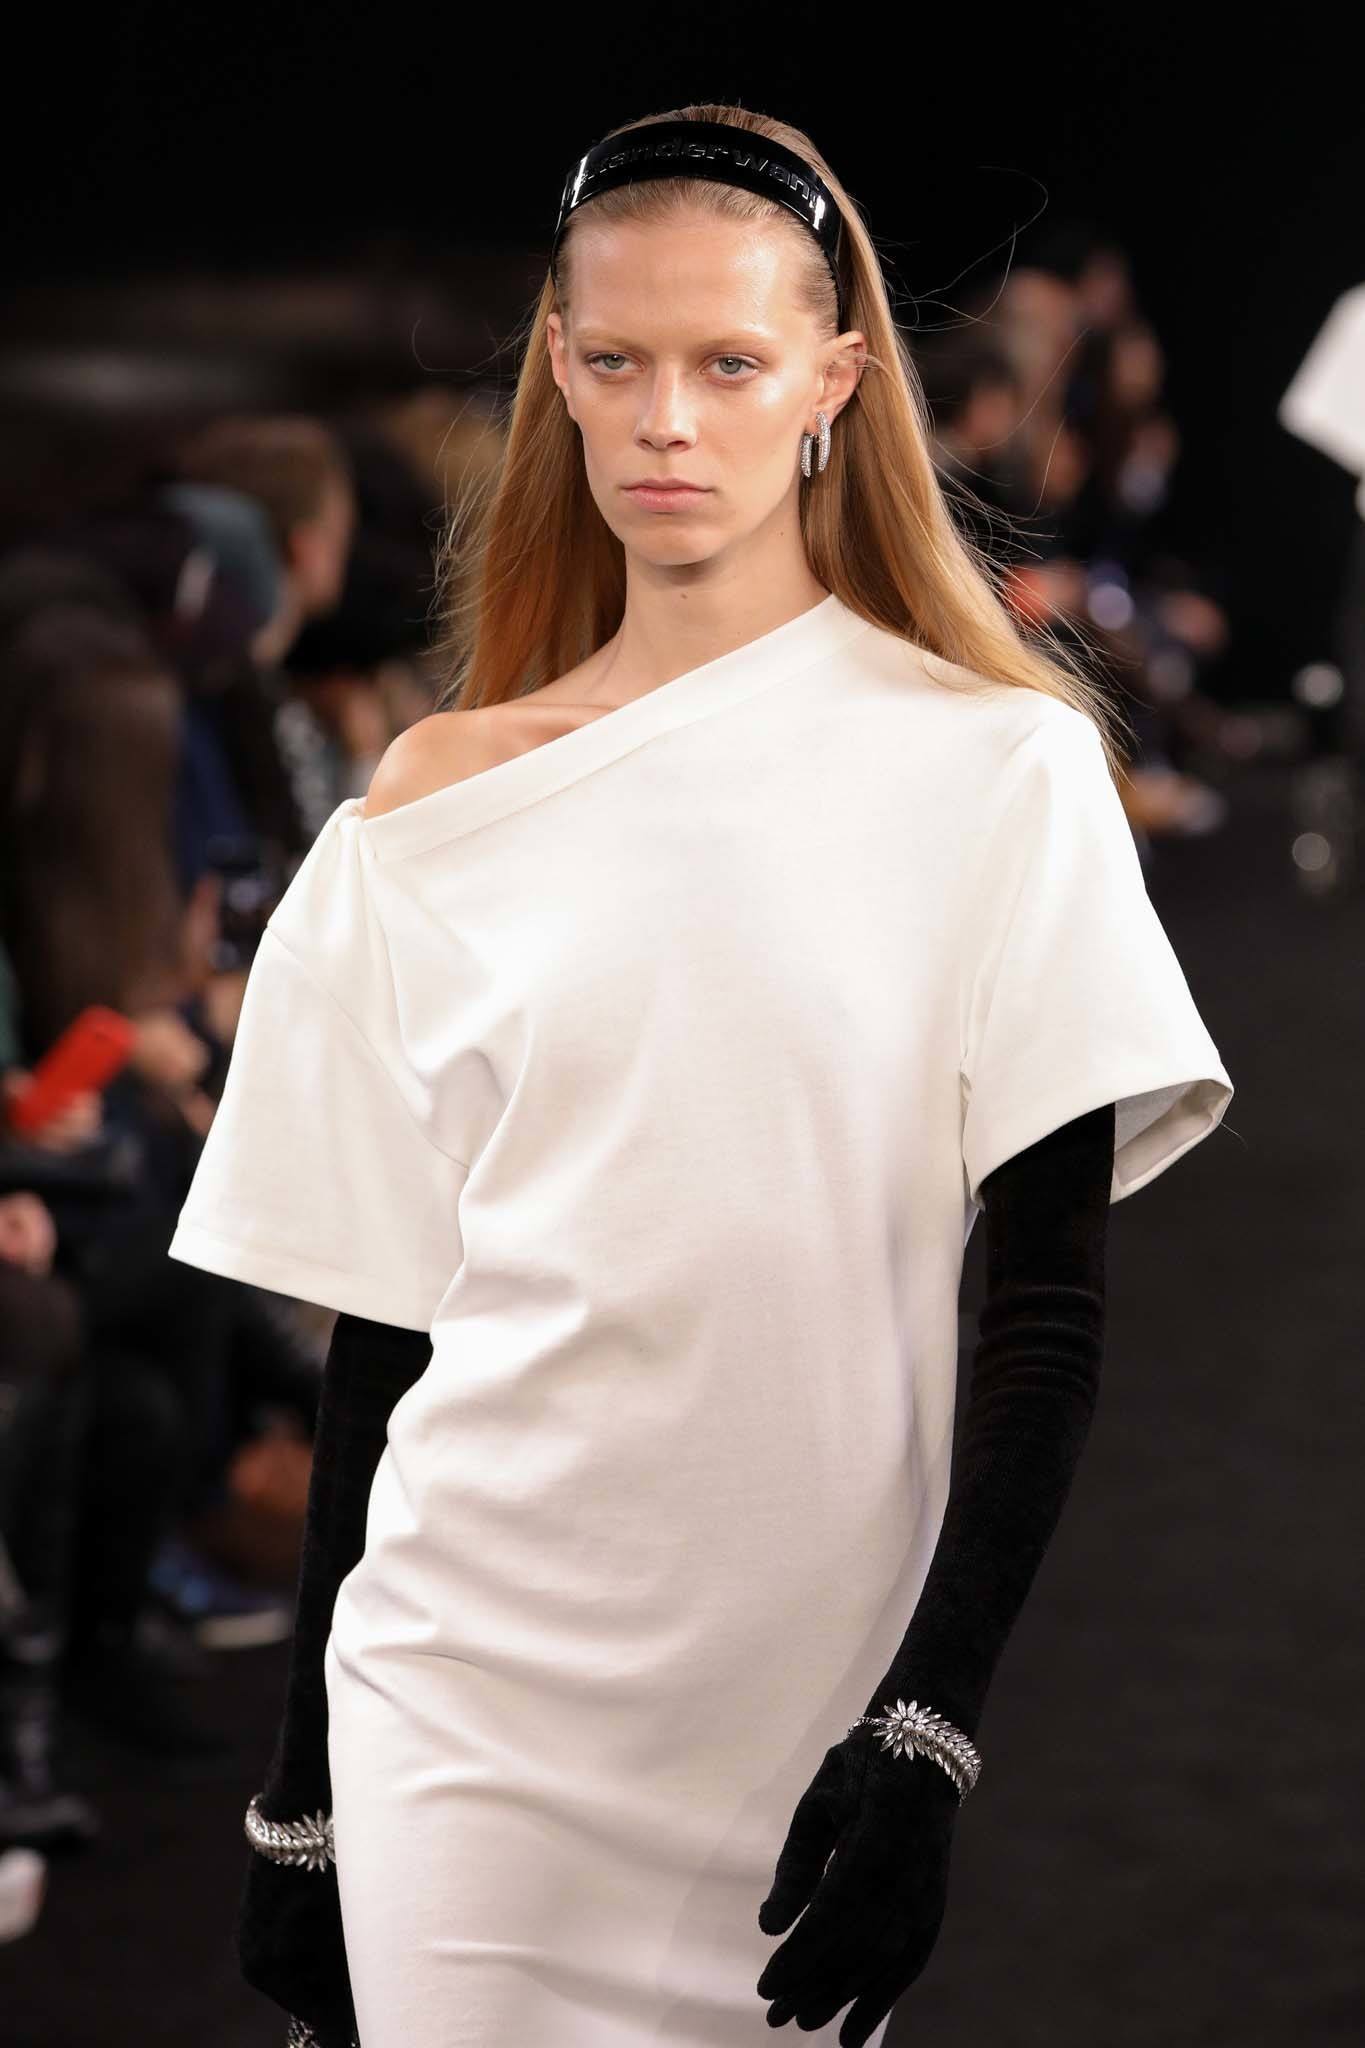 Headband and bandana hairstyles: Model with long dark blonde straight hair with a black patent headband wearing a white off the shoulder dress ad long black gloves on Alexander Wang SS19 runway.